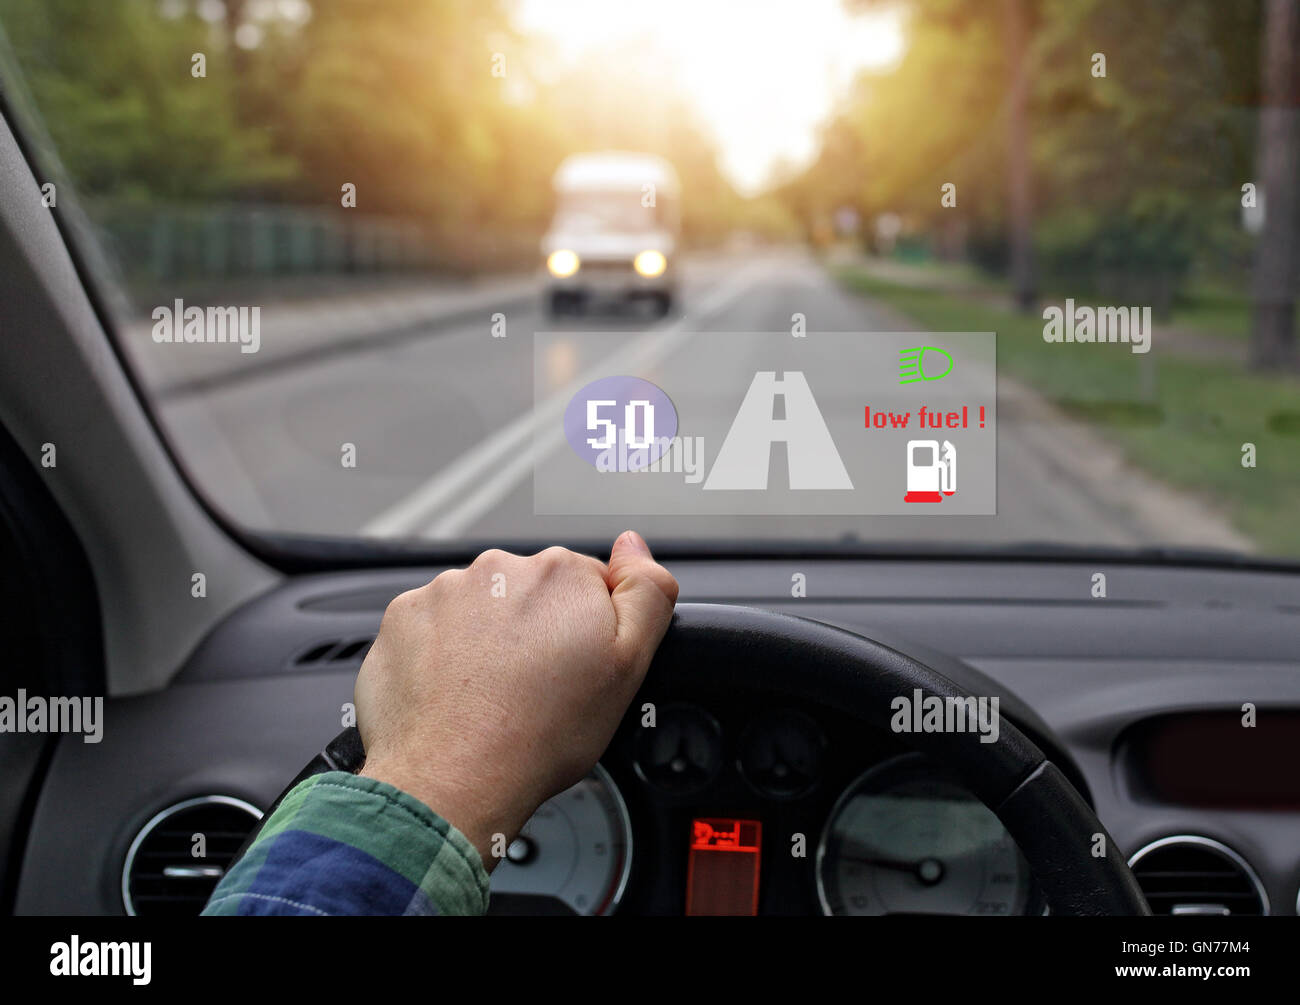 car equipped with head up the system shows little fuel - Stock Image